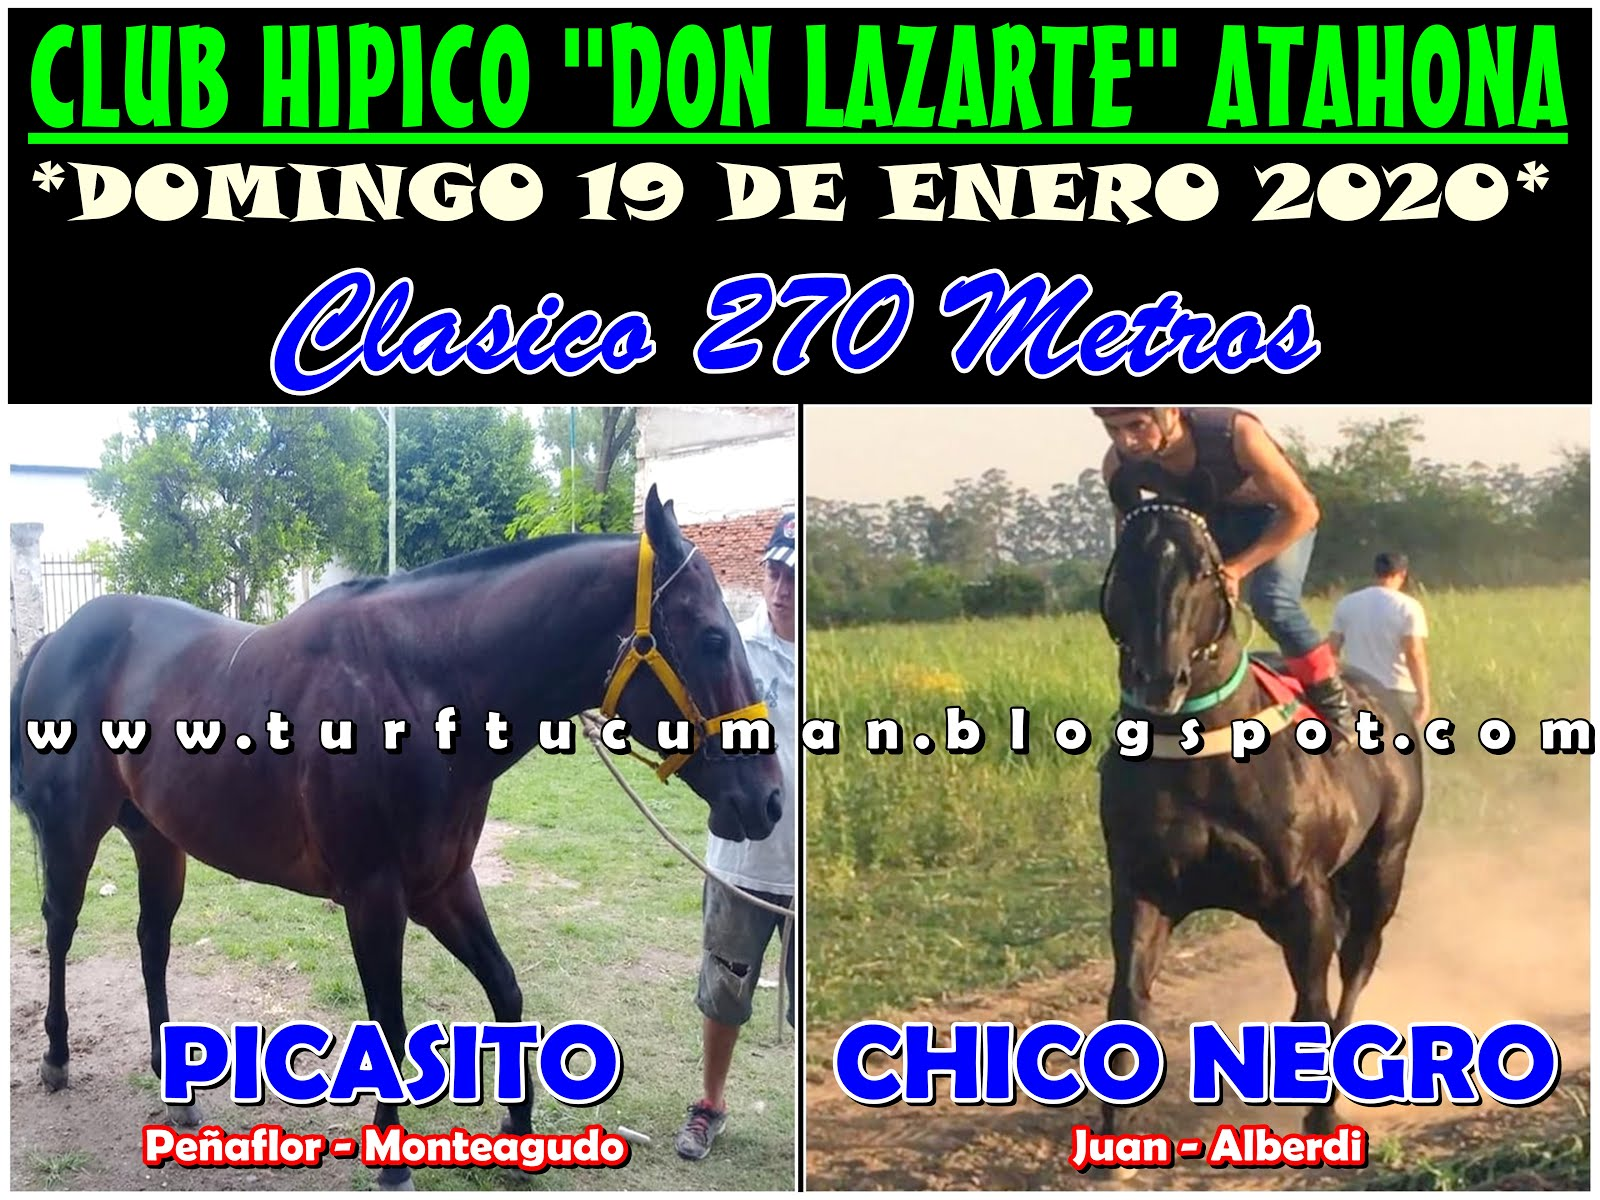 CHICO NEGRO VS PICASITO